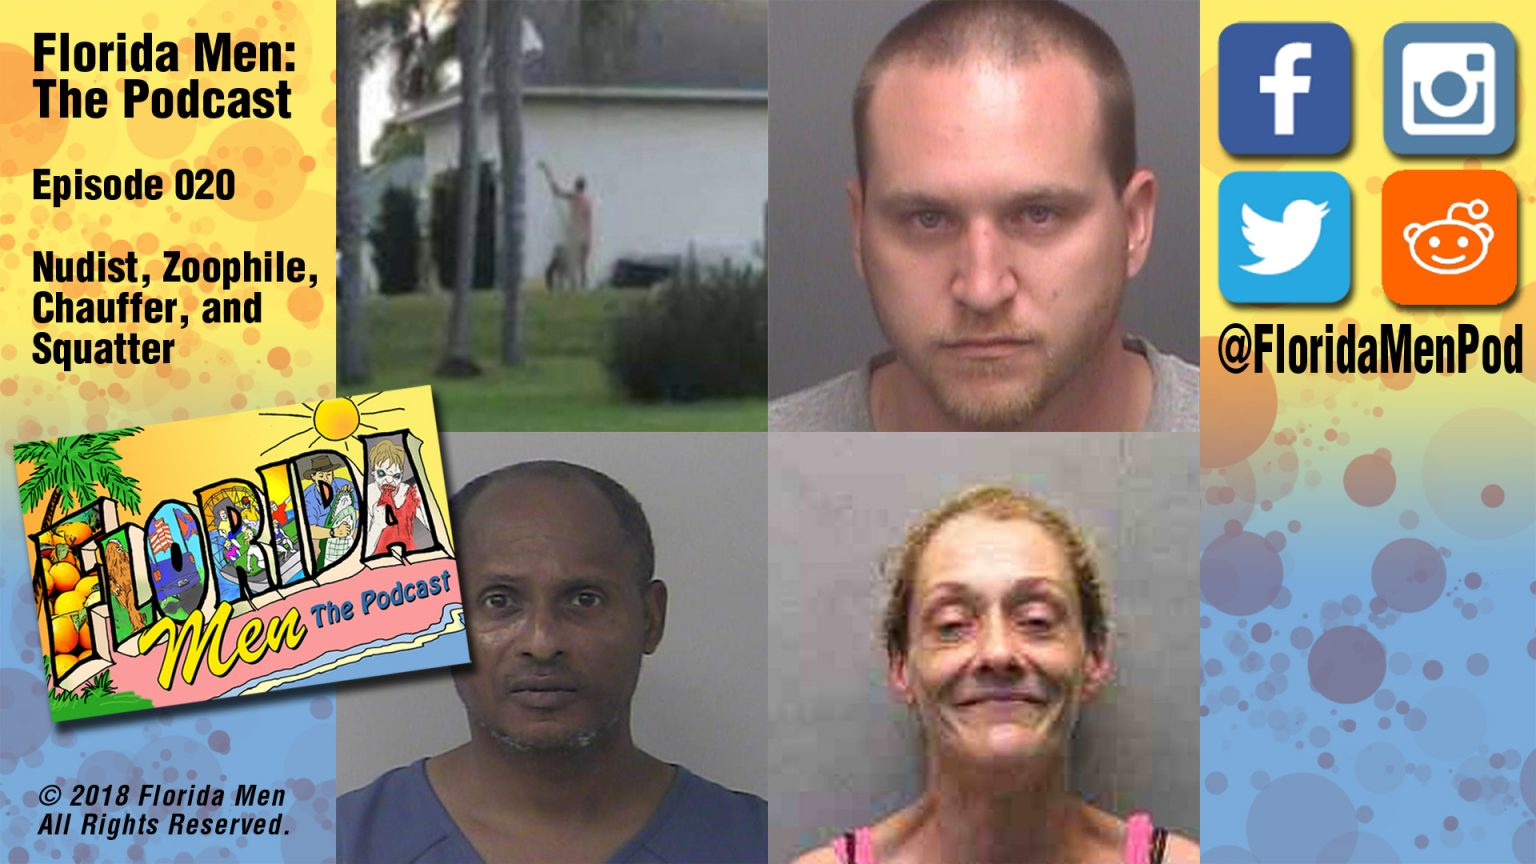 Florida Neighbors Arent Happy About The Naked Gardener